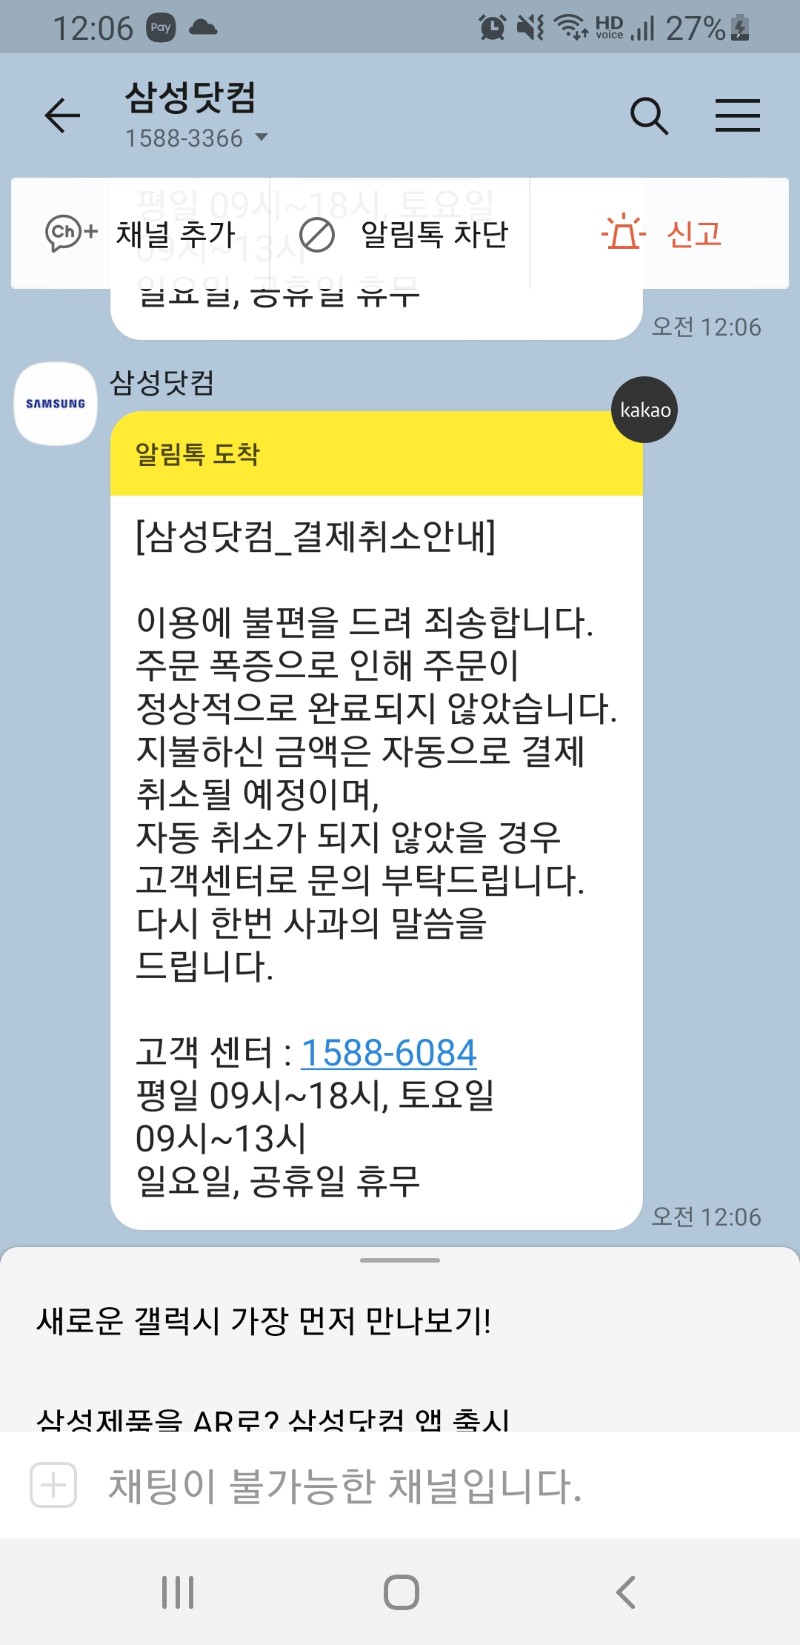 Screenshot_20200806-000617_KakaoTalk.jpg